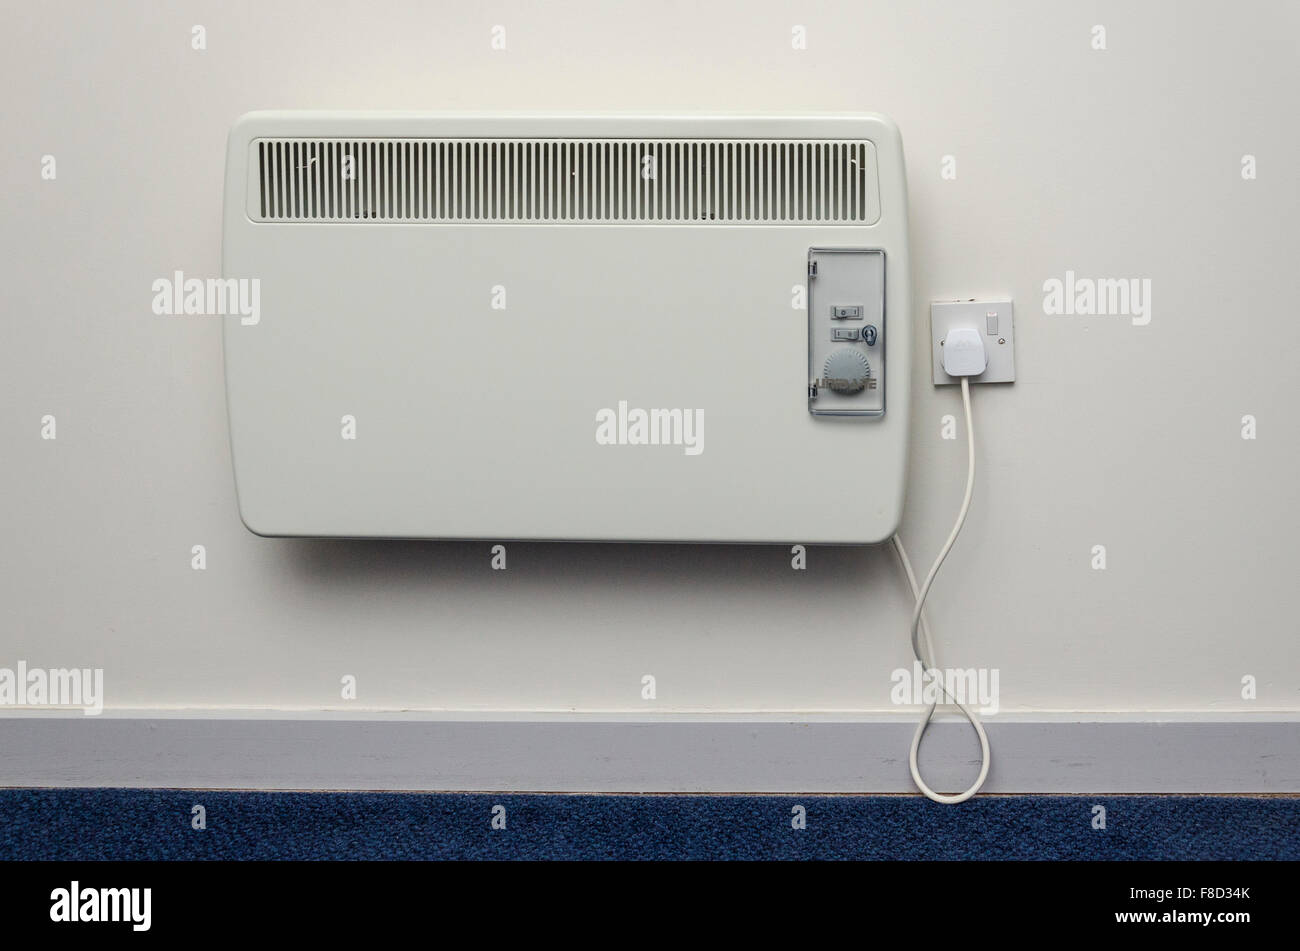 Electric room heater on a wall - Stock Image